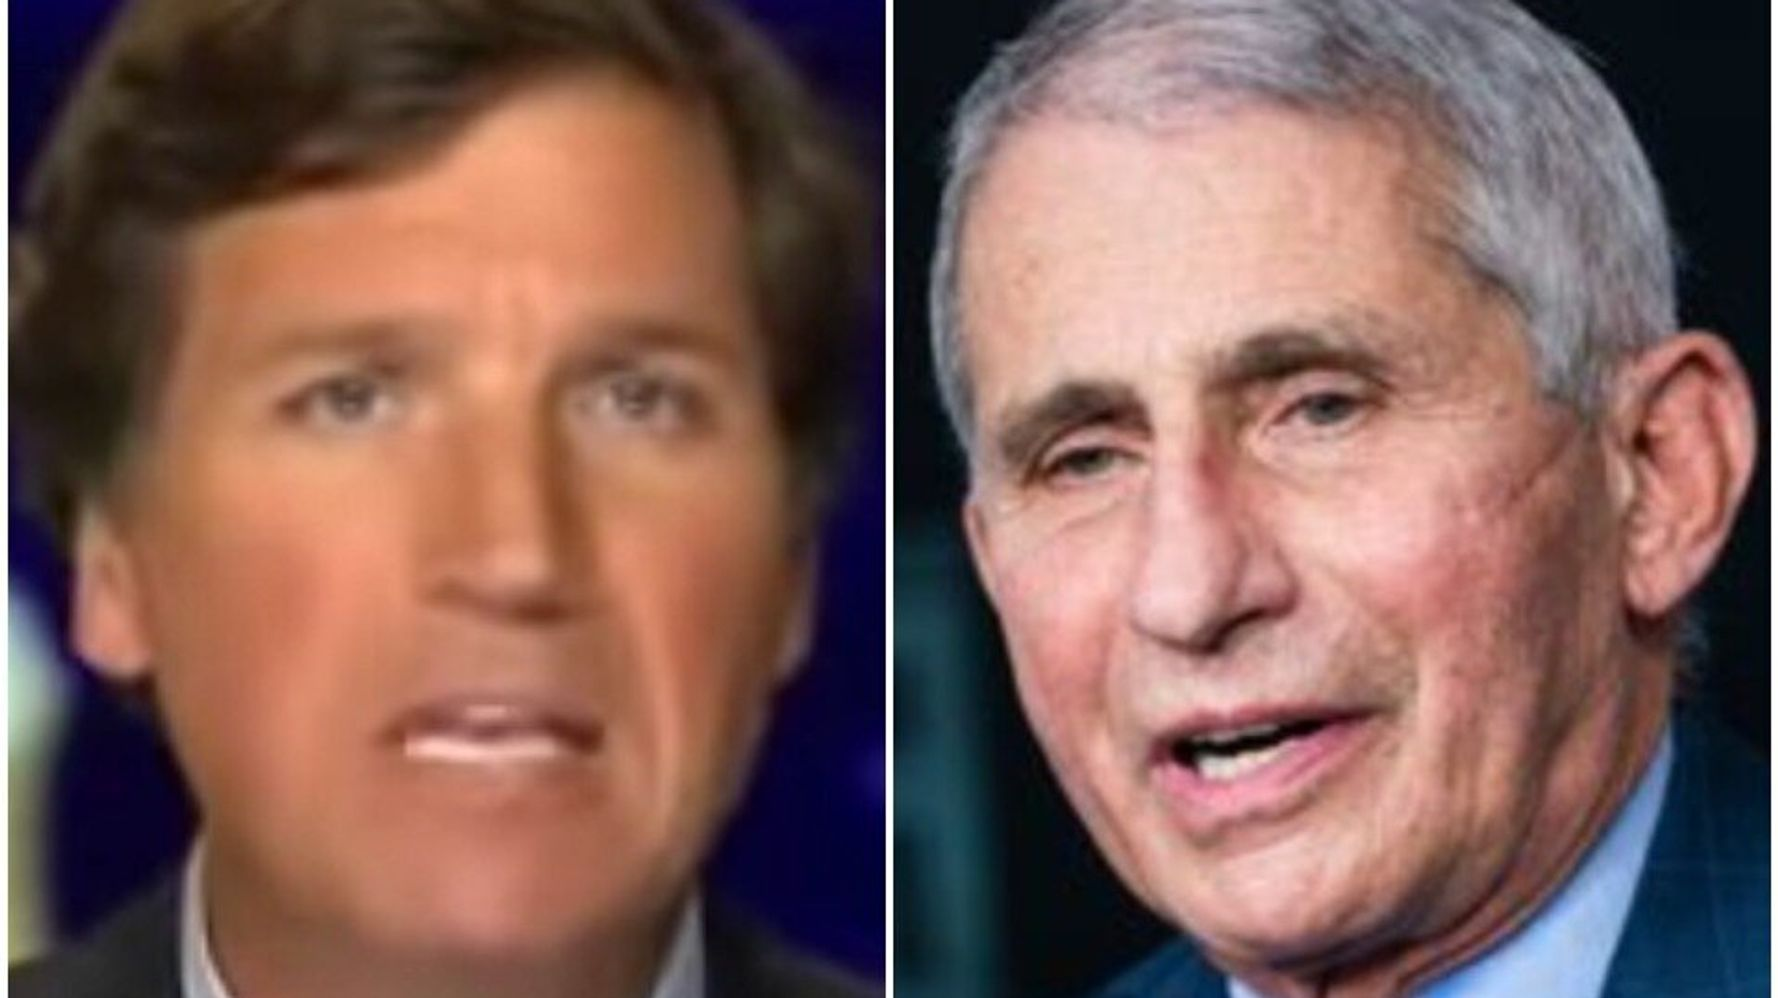 Tucker Carlson Springs His Dumbest Attack Yet On Anthony Fauci